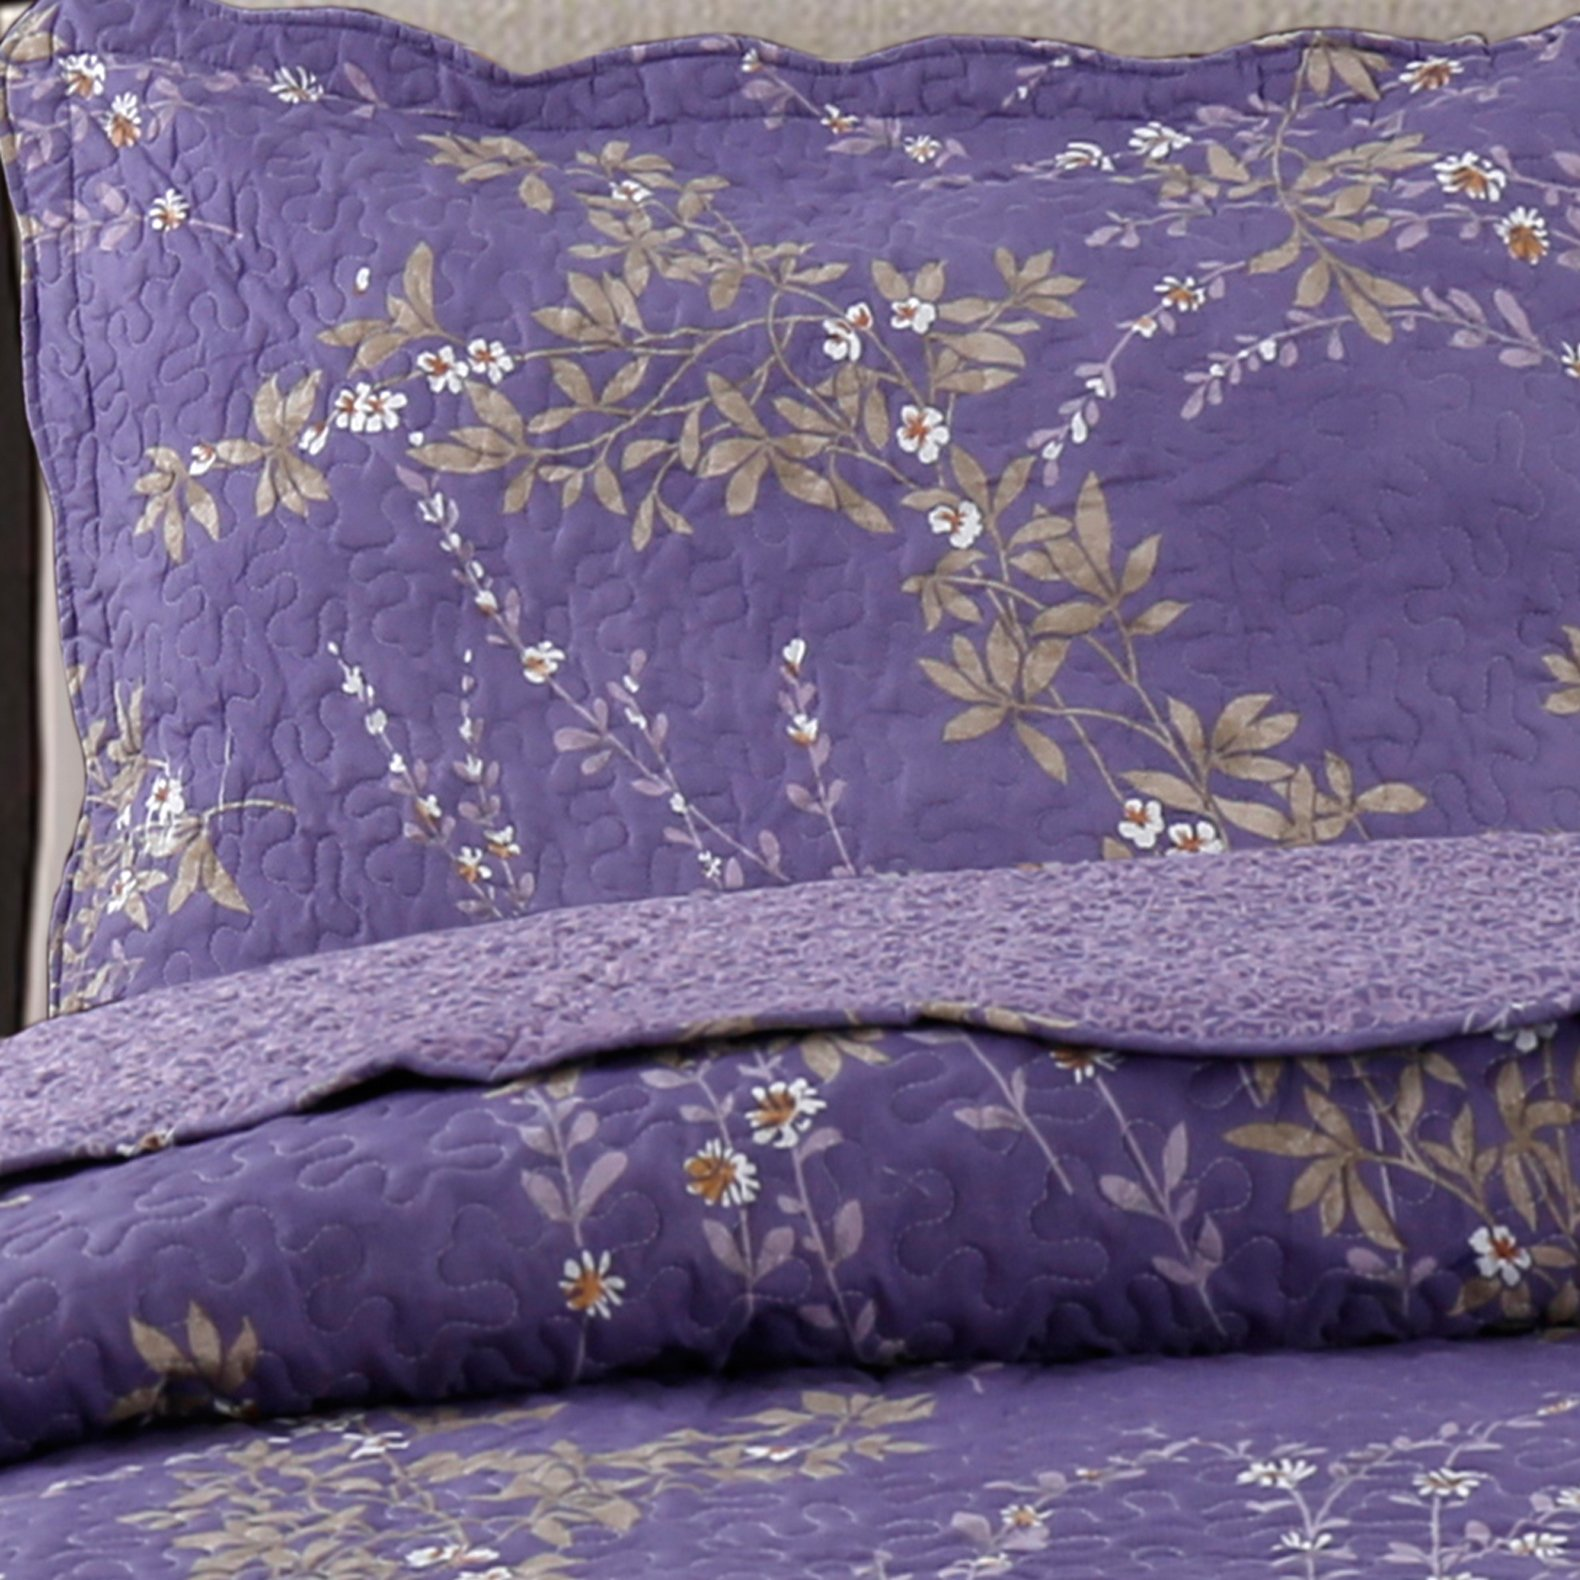 Kasentex Country-Chic Printed Pre-Washed Set. Microfiber Fabric Floral Design Quilt + 2 Shams, KING 104X90+20X36 X2, Purple by Kasentex (Image #3)